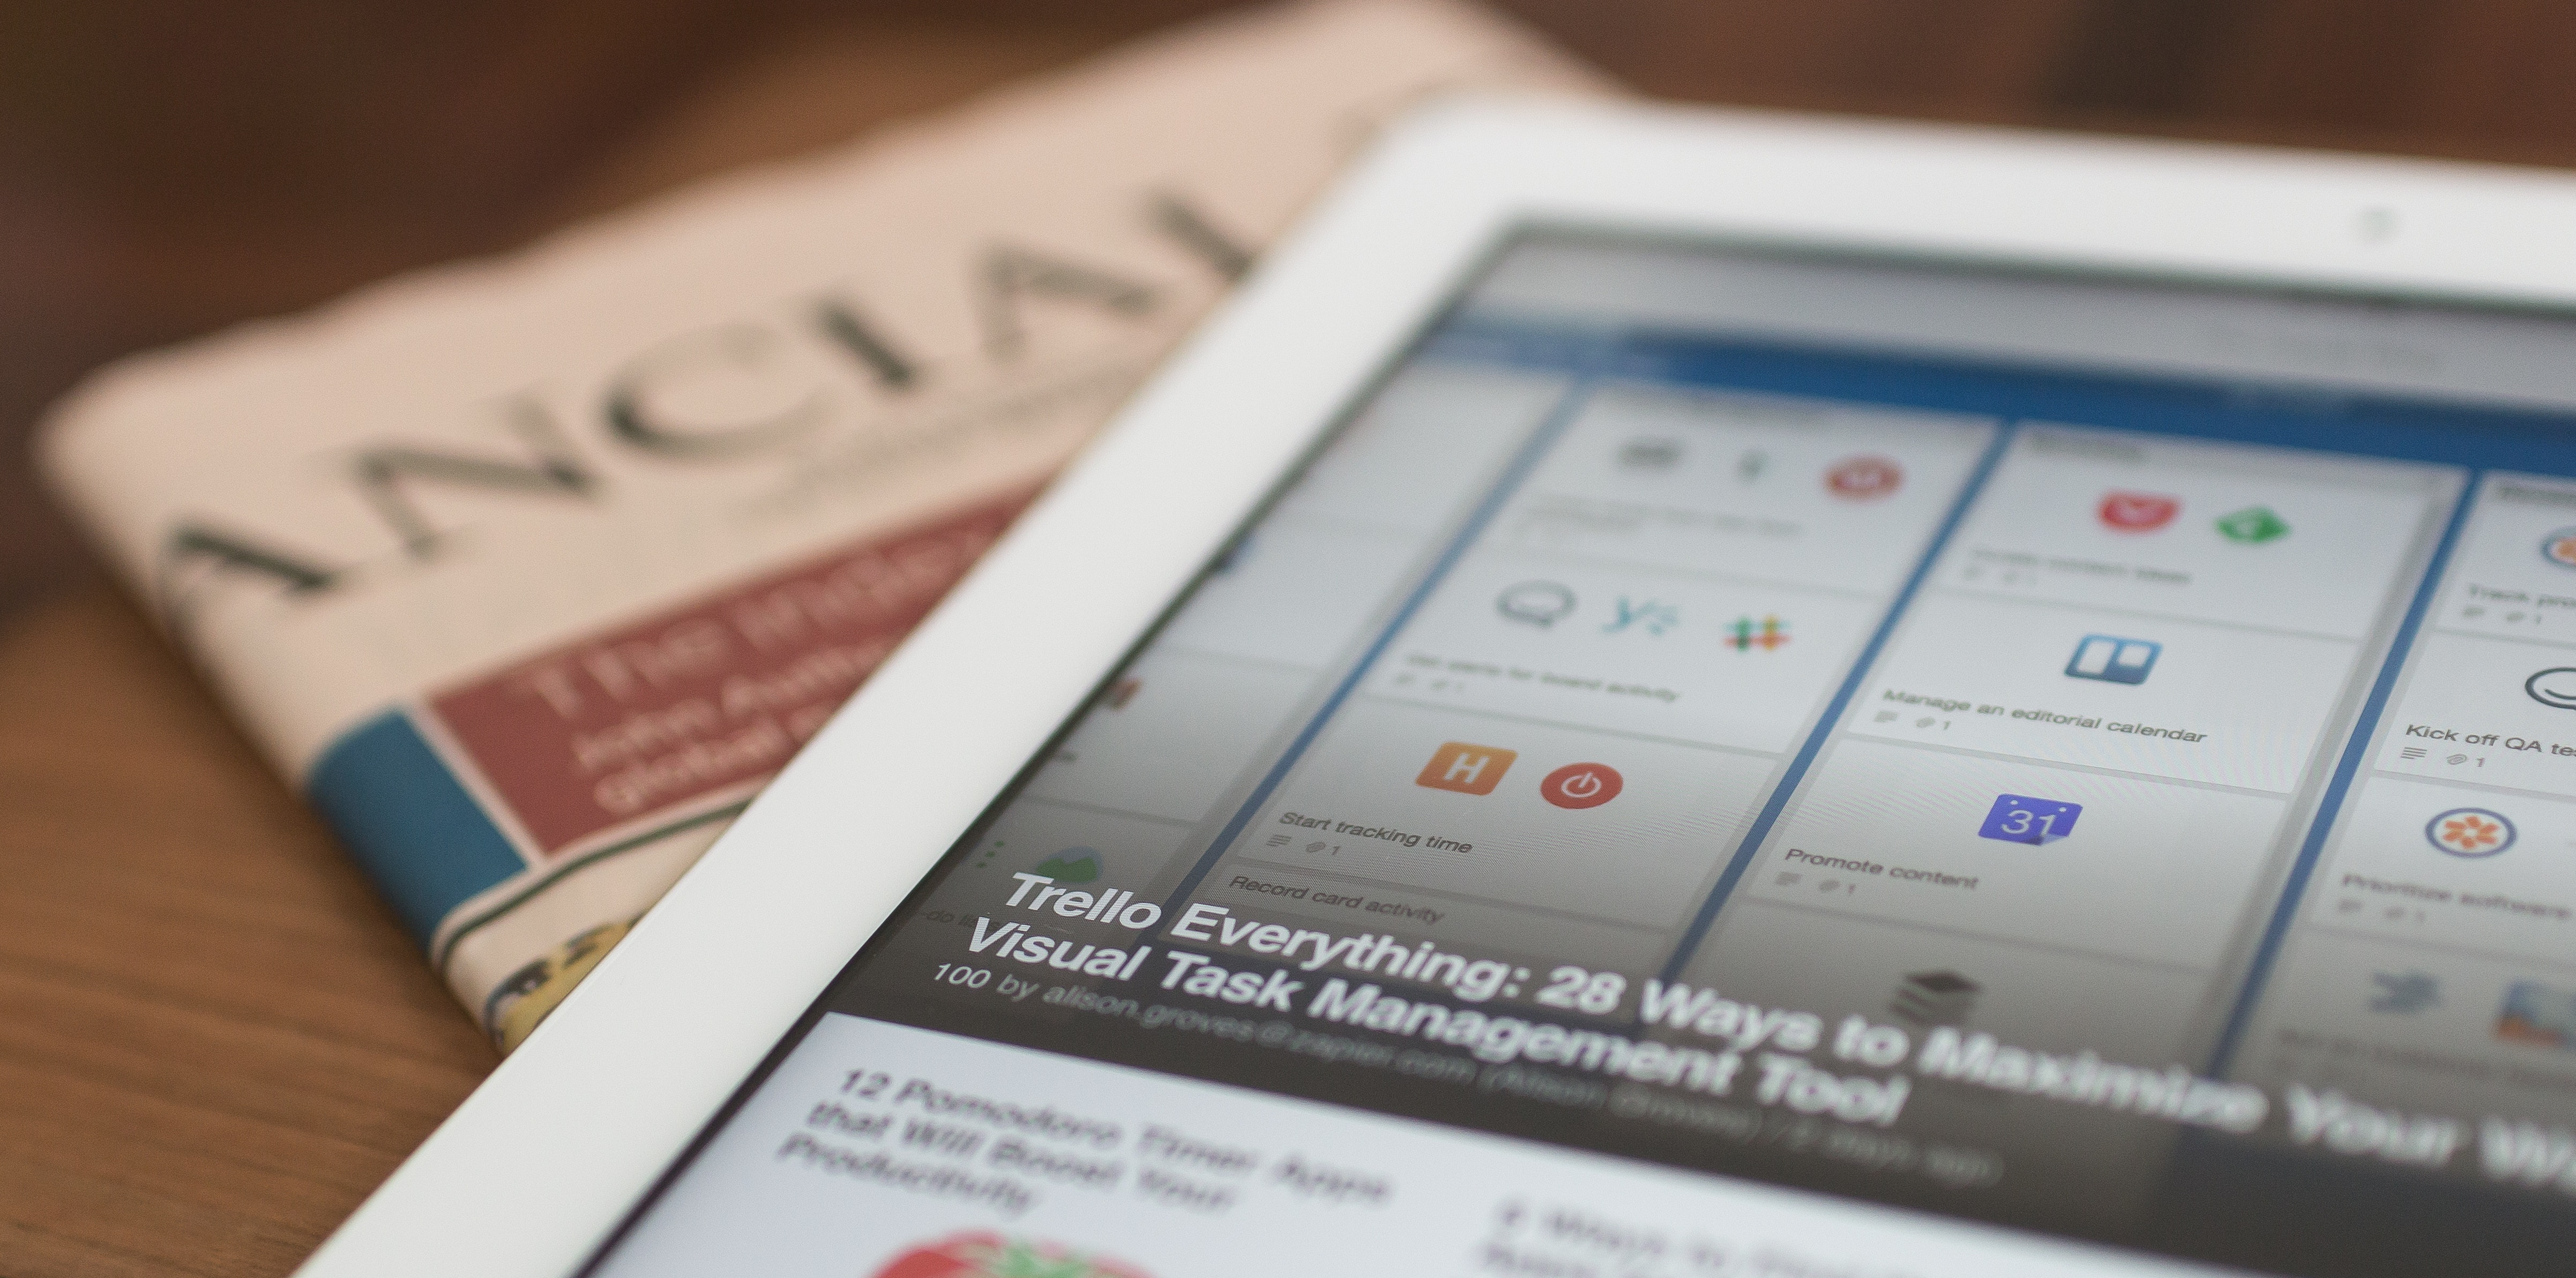 News aggregator apps iPad interface and newspaper